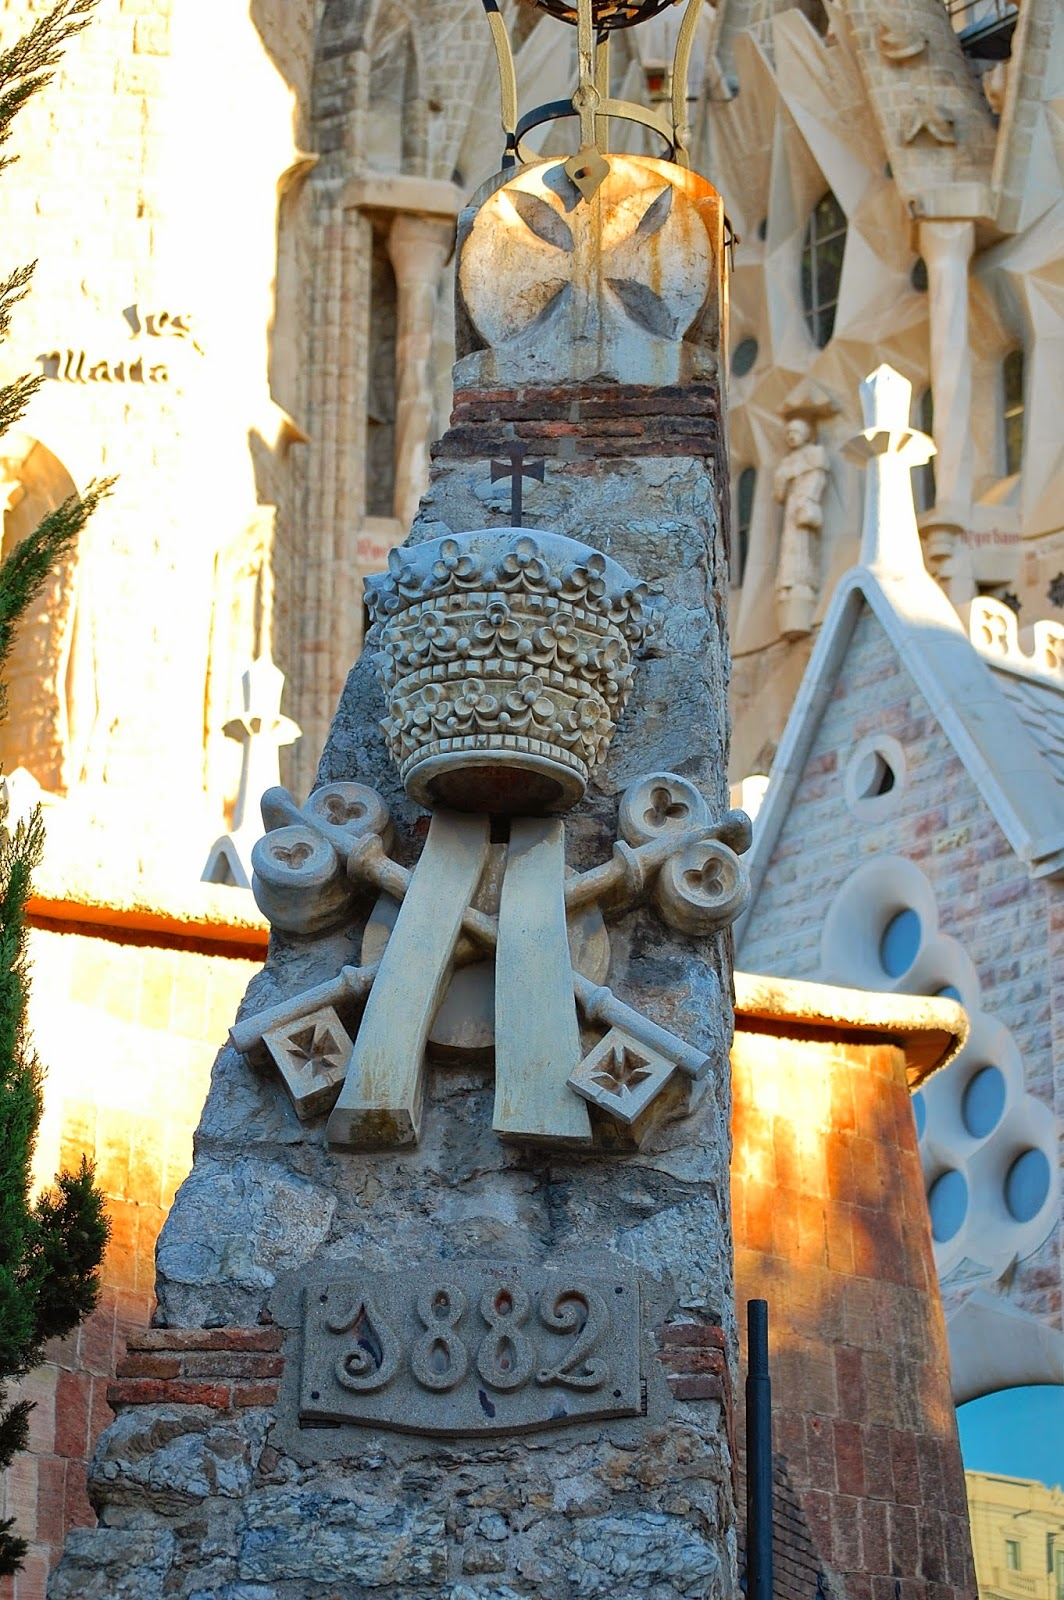 Construction on Sagrada Família began in 1882